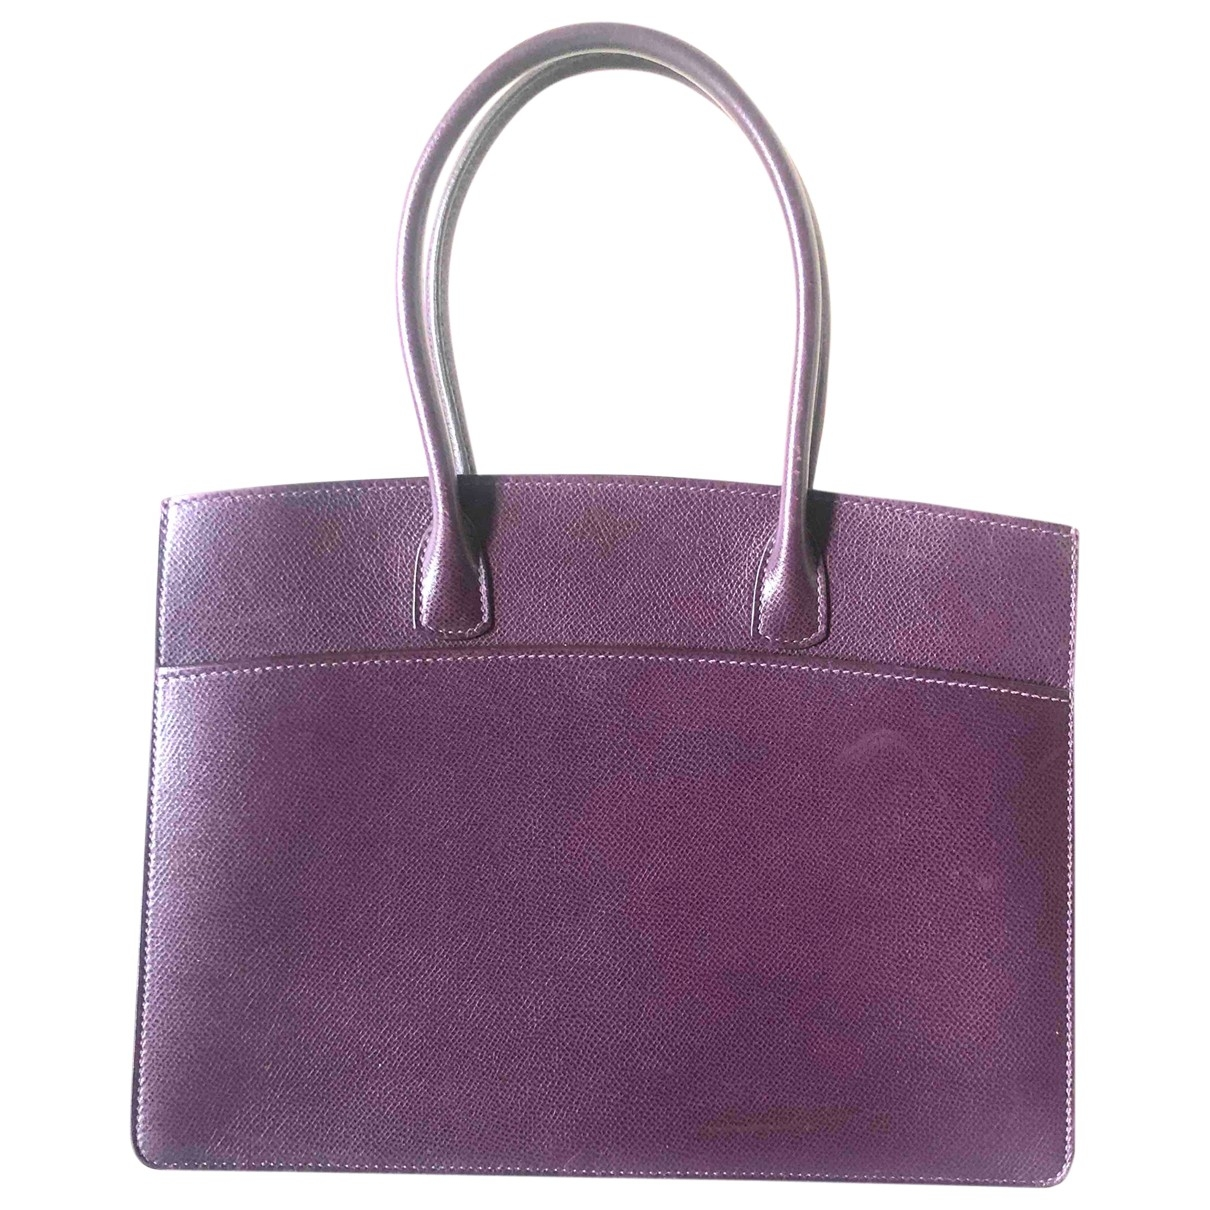 Hermès White Bus  Purple Leather handbag for Women \N